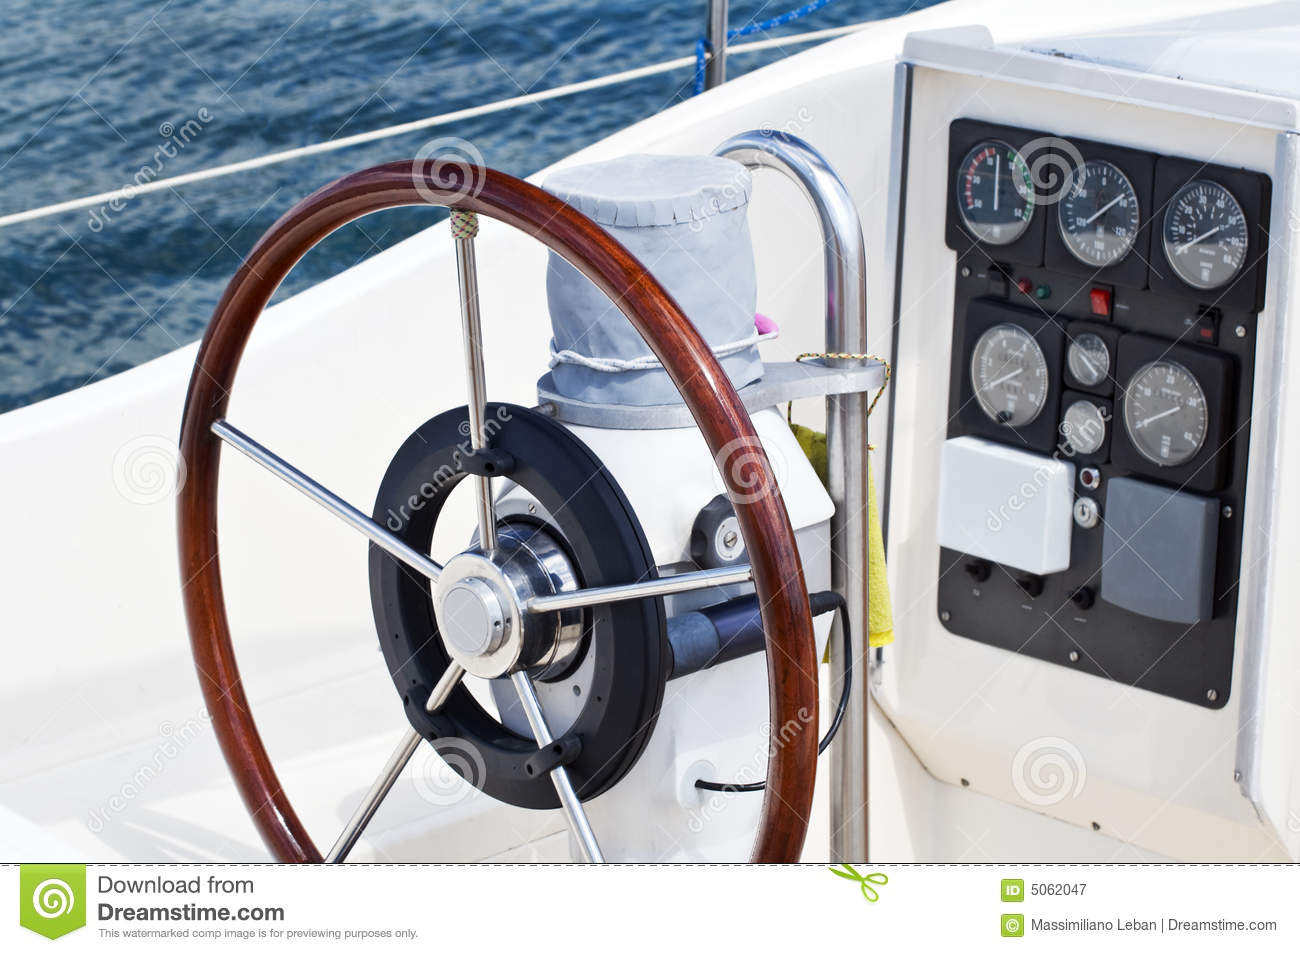 Boat Instruments Royalty Free Stock Photography - Image: 5062047